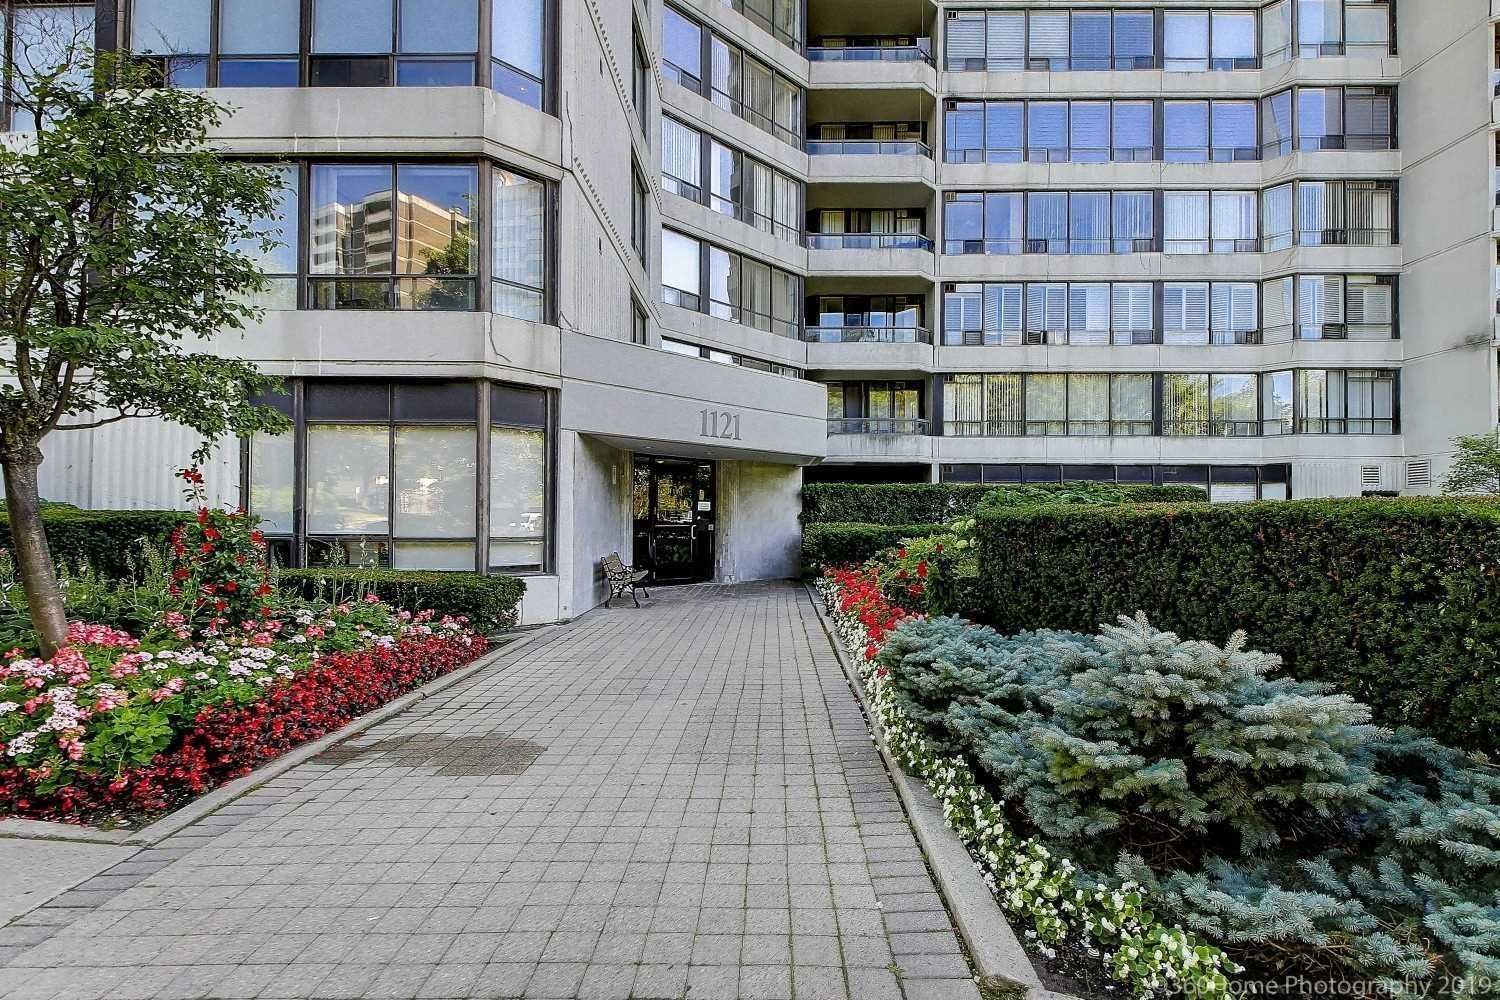 1121 Steeles Ave W, unit 809 for sale in Toronto - image #1